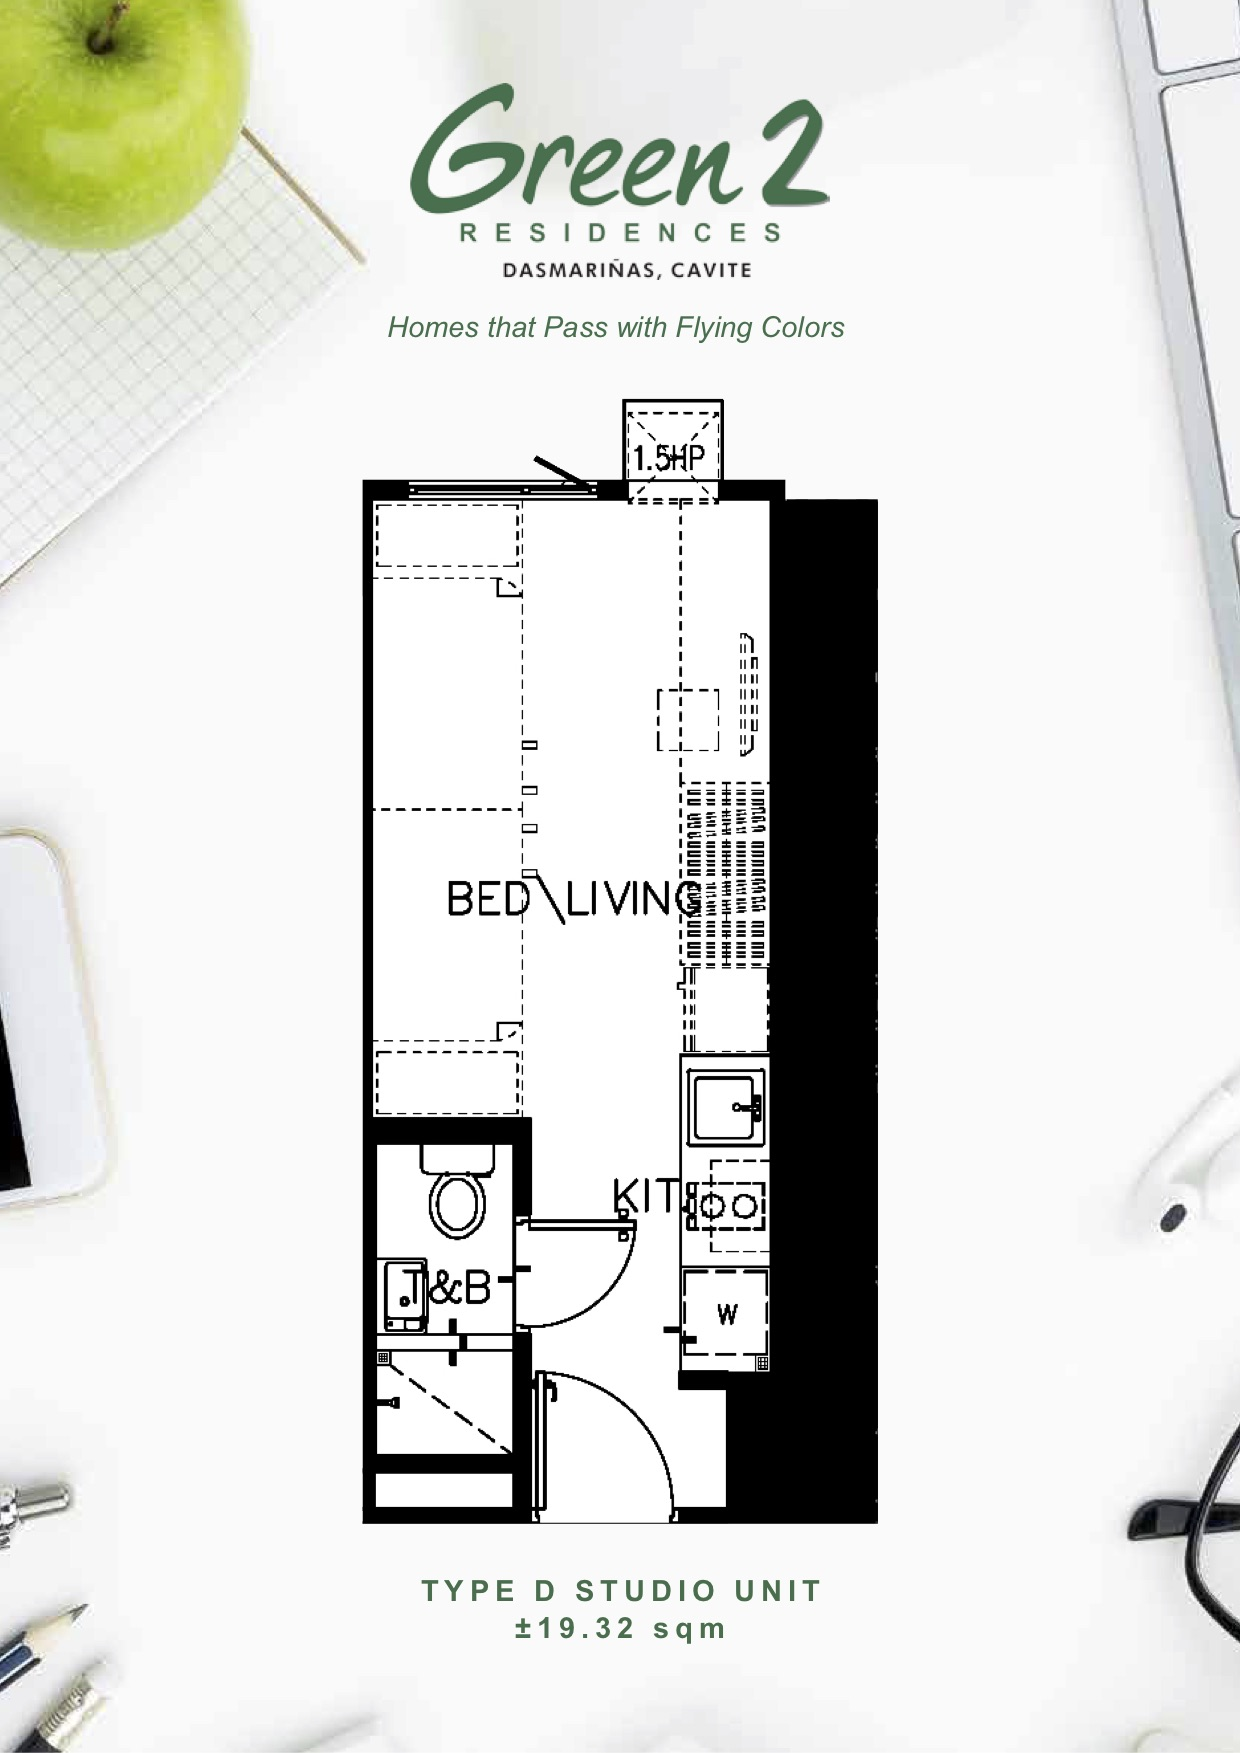 TYPE D STUDIO UNIT ±19.32 sqm